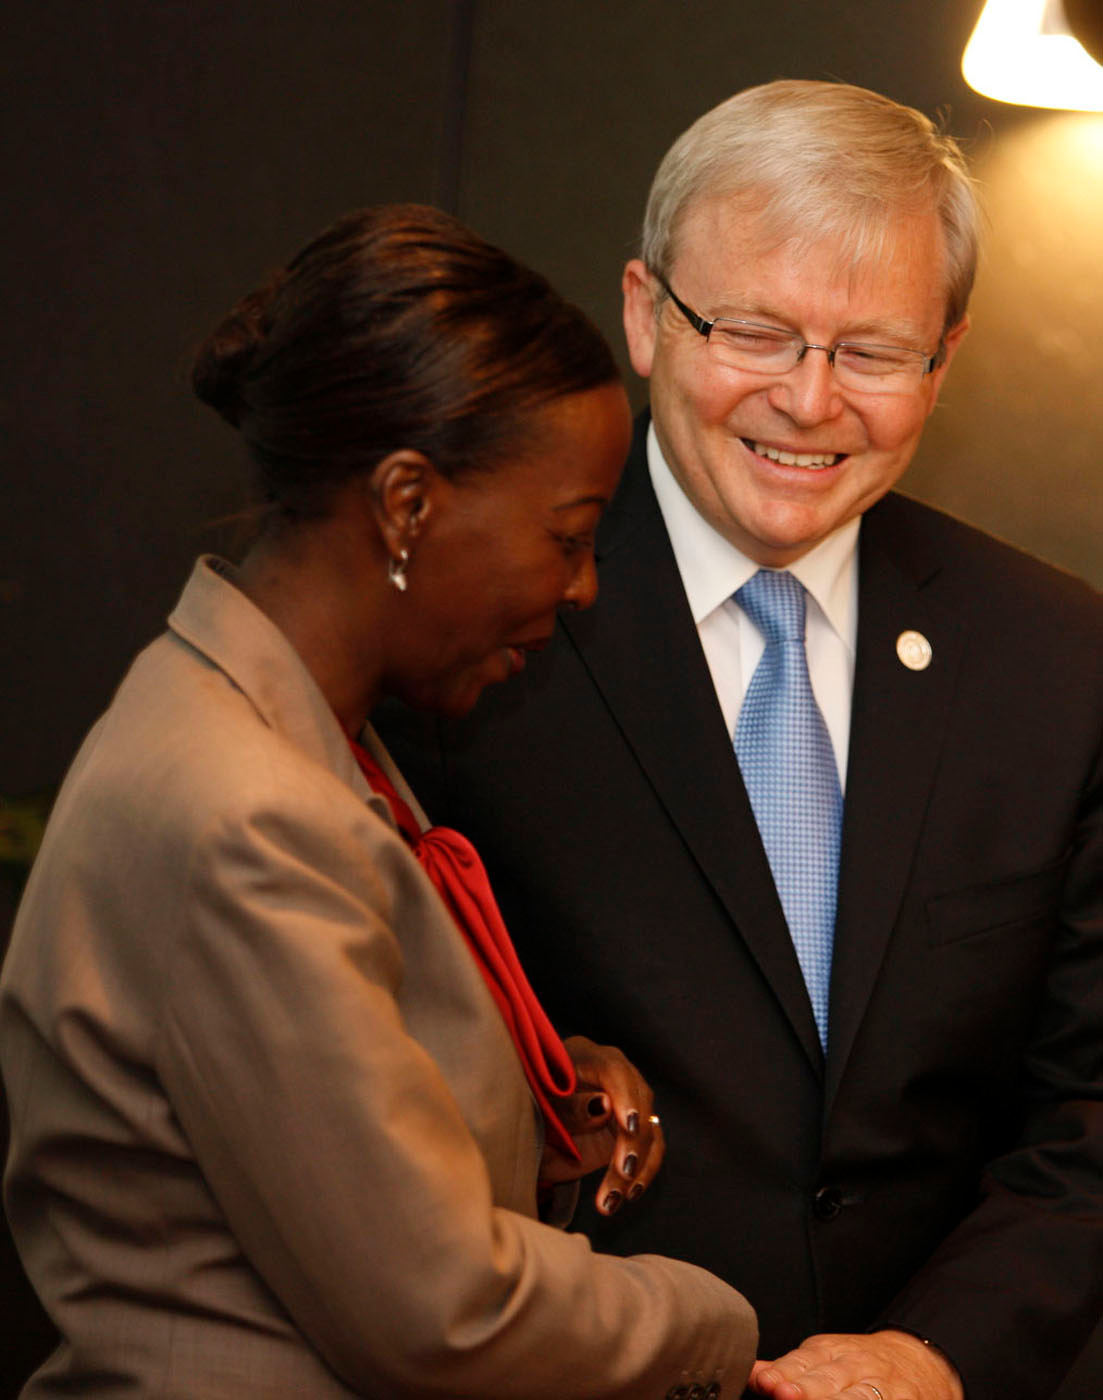 Minister Rudd with HE Ms Louise Mushikiwabo, Minister of Foreign Affairs and Cooperation of the Republic of Rwanda at the Commonwealth and Developing Small States Foreign Ministers Meeting in Perth today. CHOGM - October, 2011.